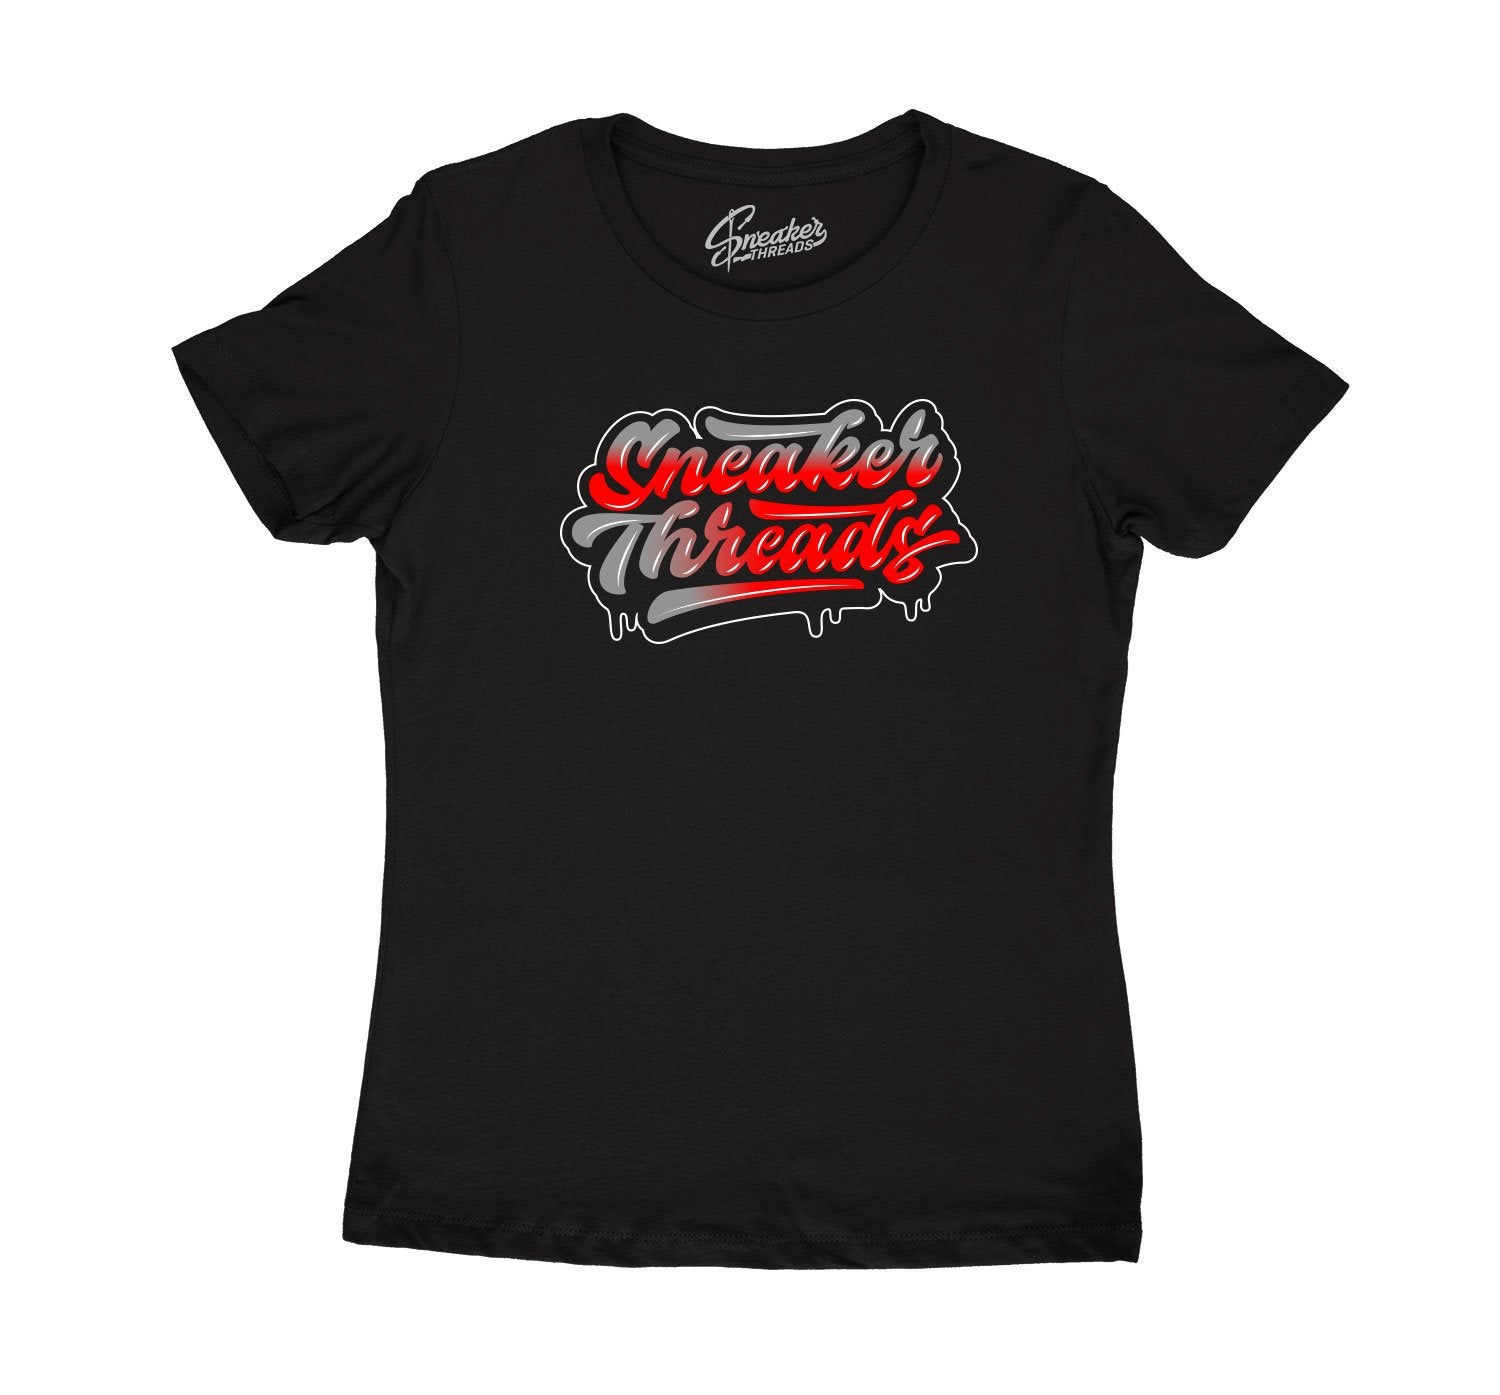 Jordan 12 Dark Grey sneakers have matching ladies shirt collection